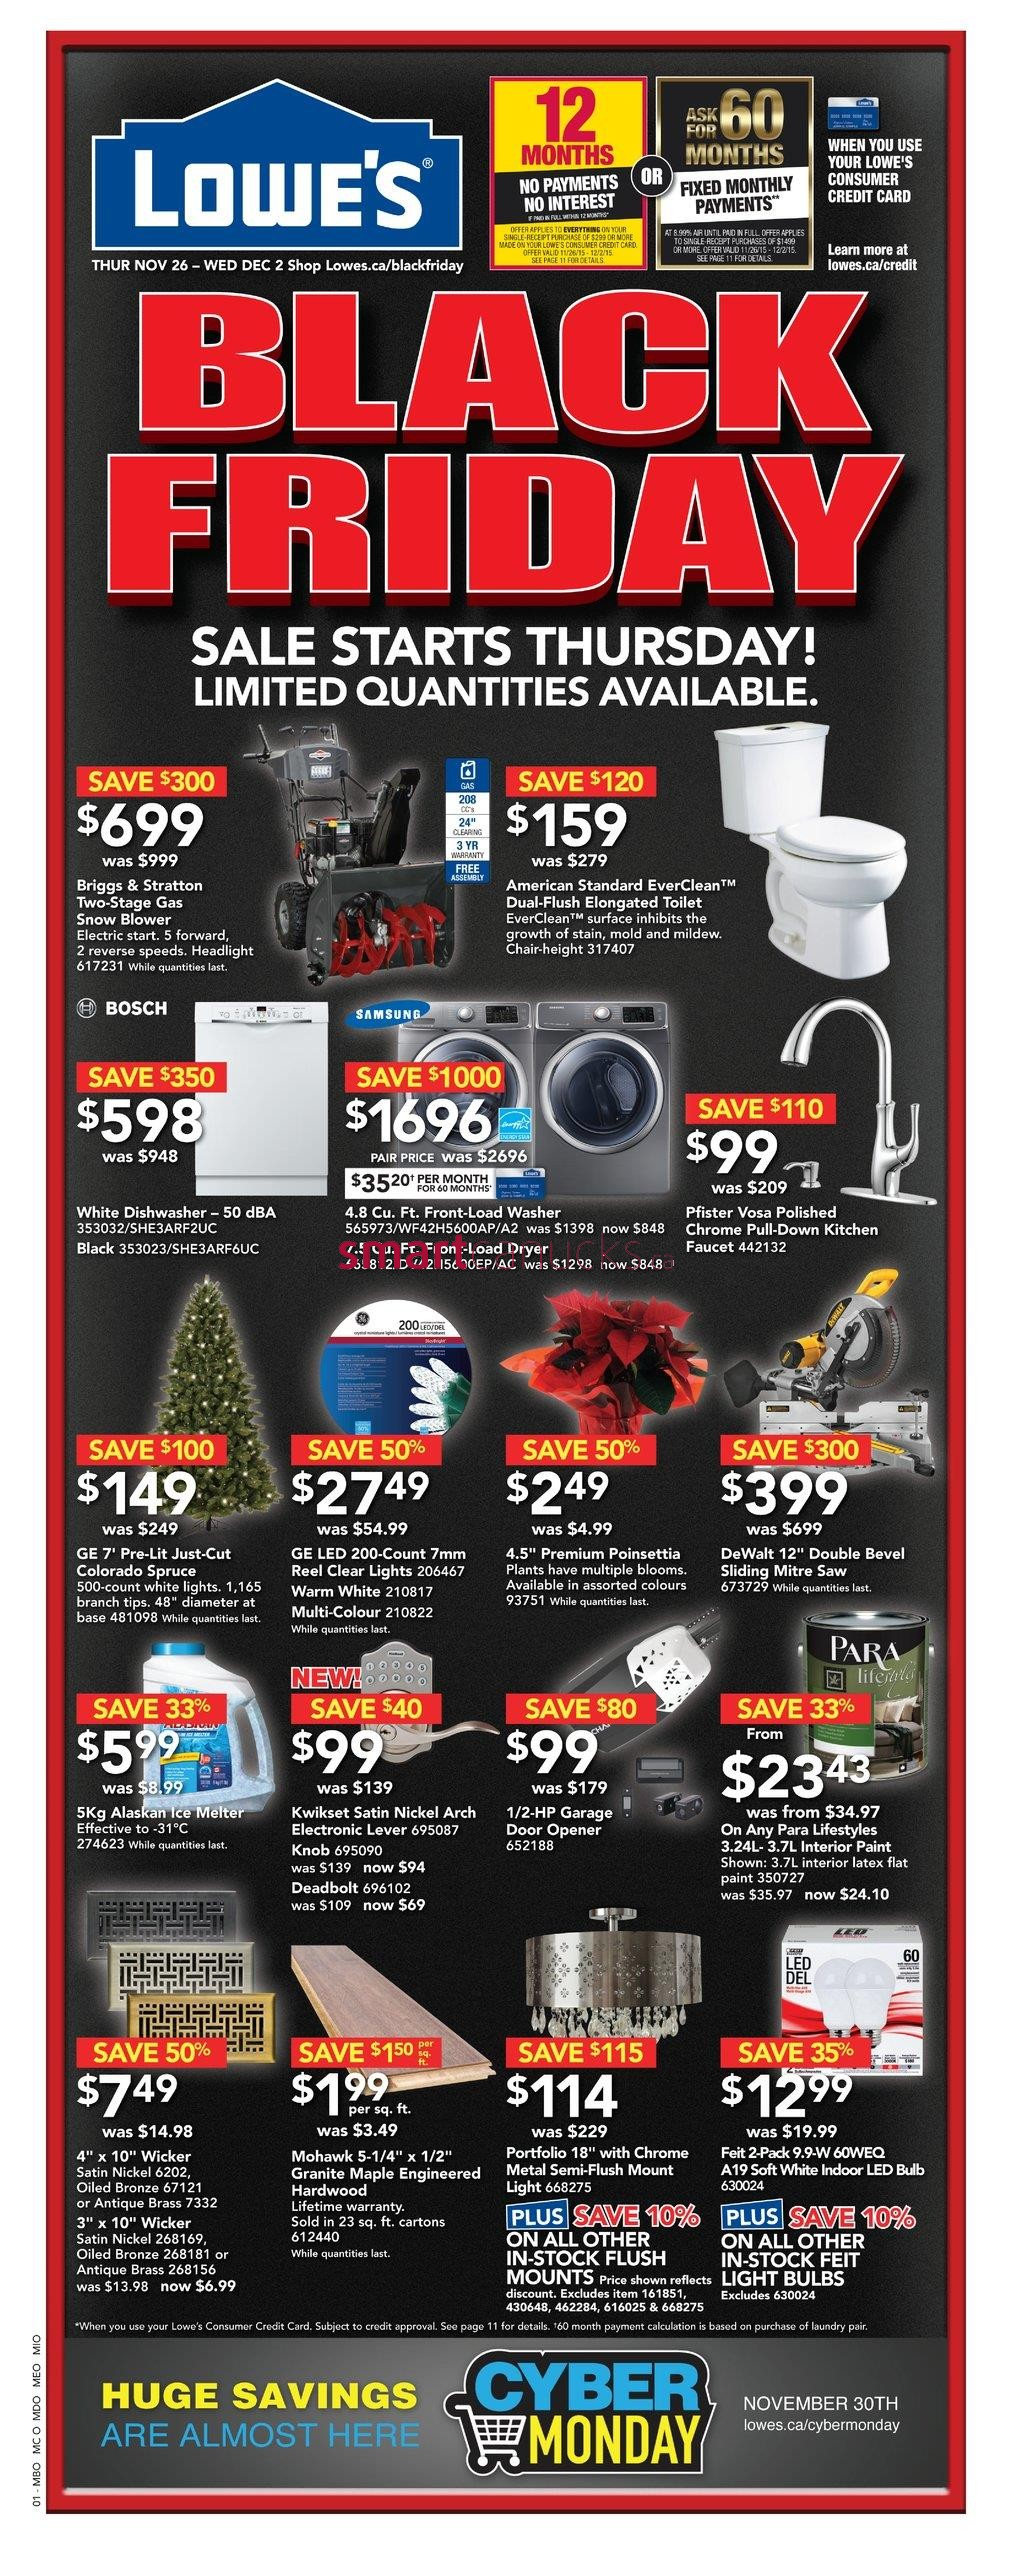 Be sure to visit the Black Friday Page for all the current Black Friday Ads including store hours and online deals. There are ads from 30 different retailers including CVS, .